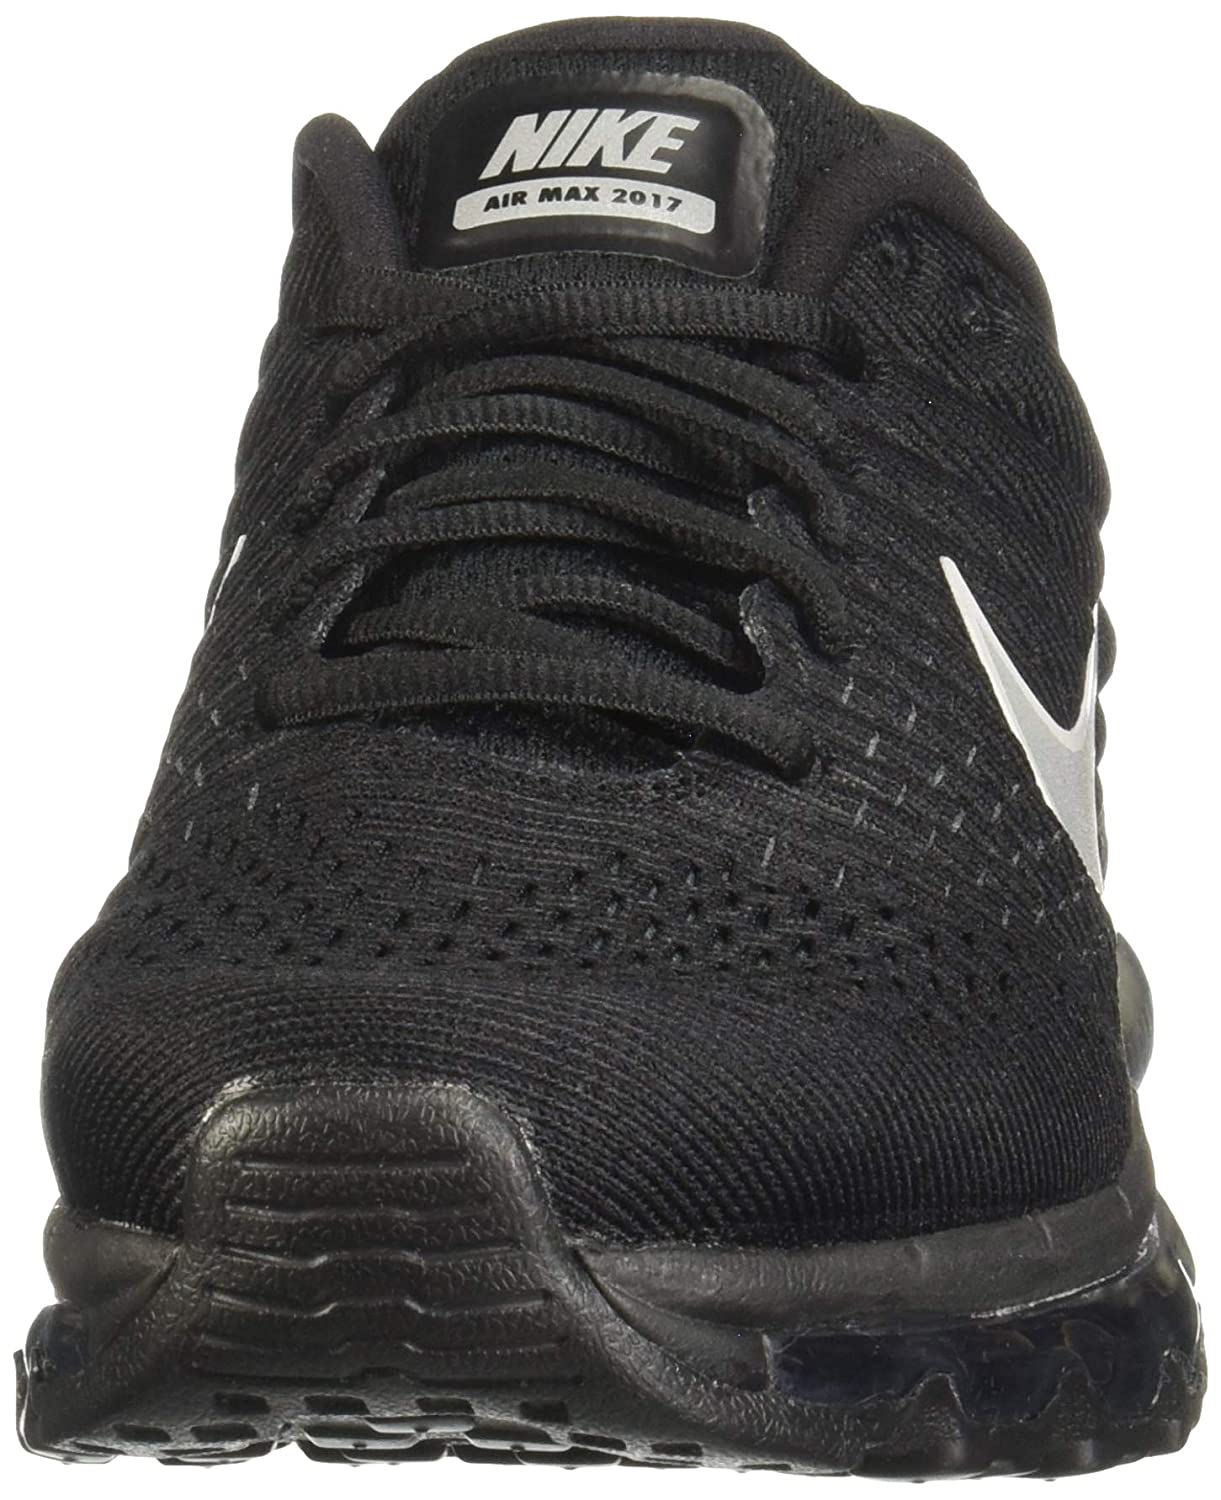 on sale b66b5 a16d4 Amazon.com   Nike Womens Air Max 2017 Running Shoes Black White Anthracite  849560-001 Size 10   Road Running